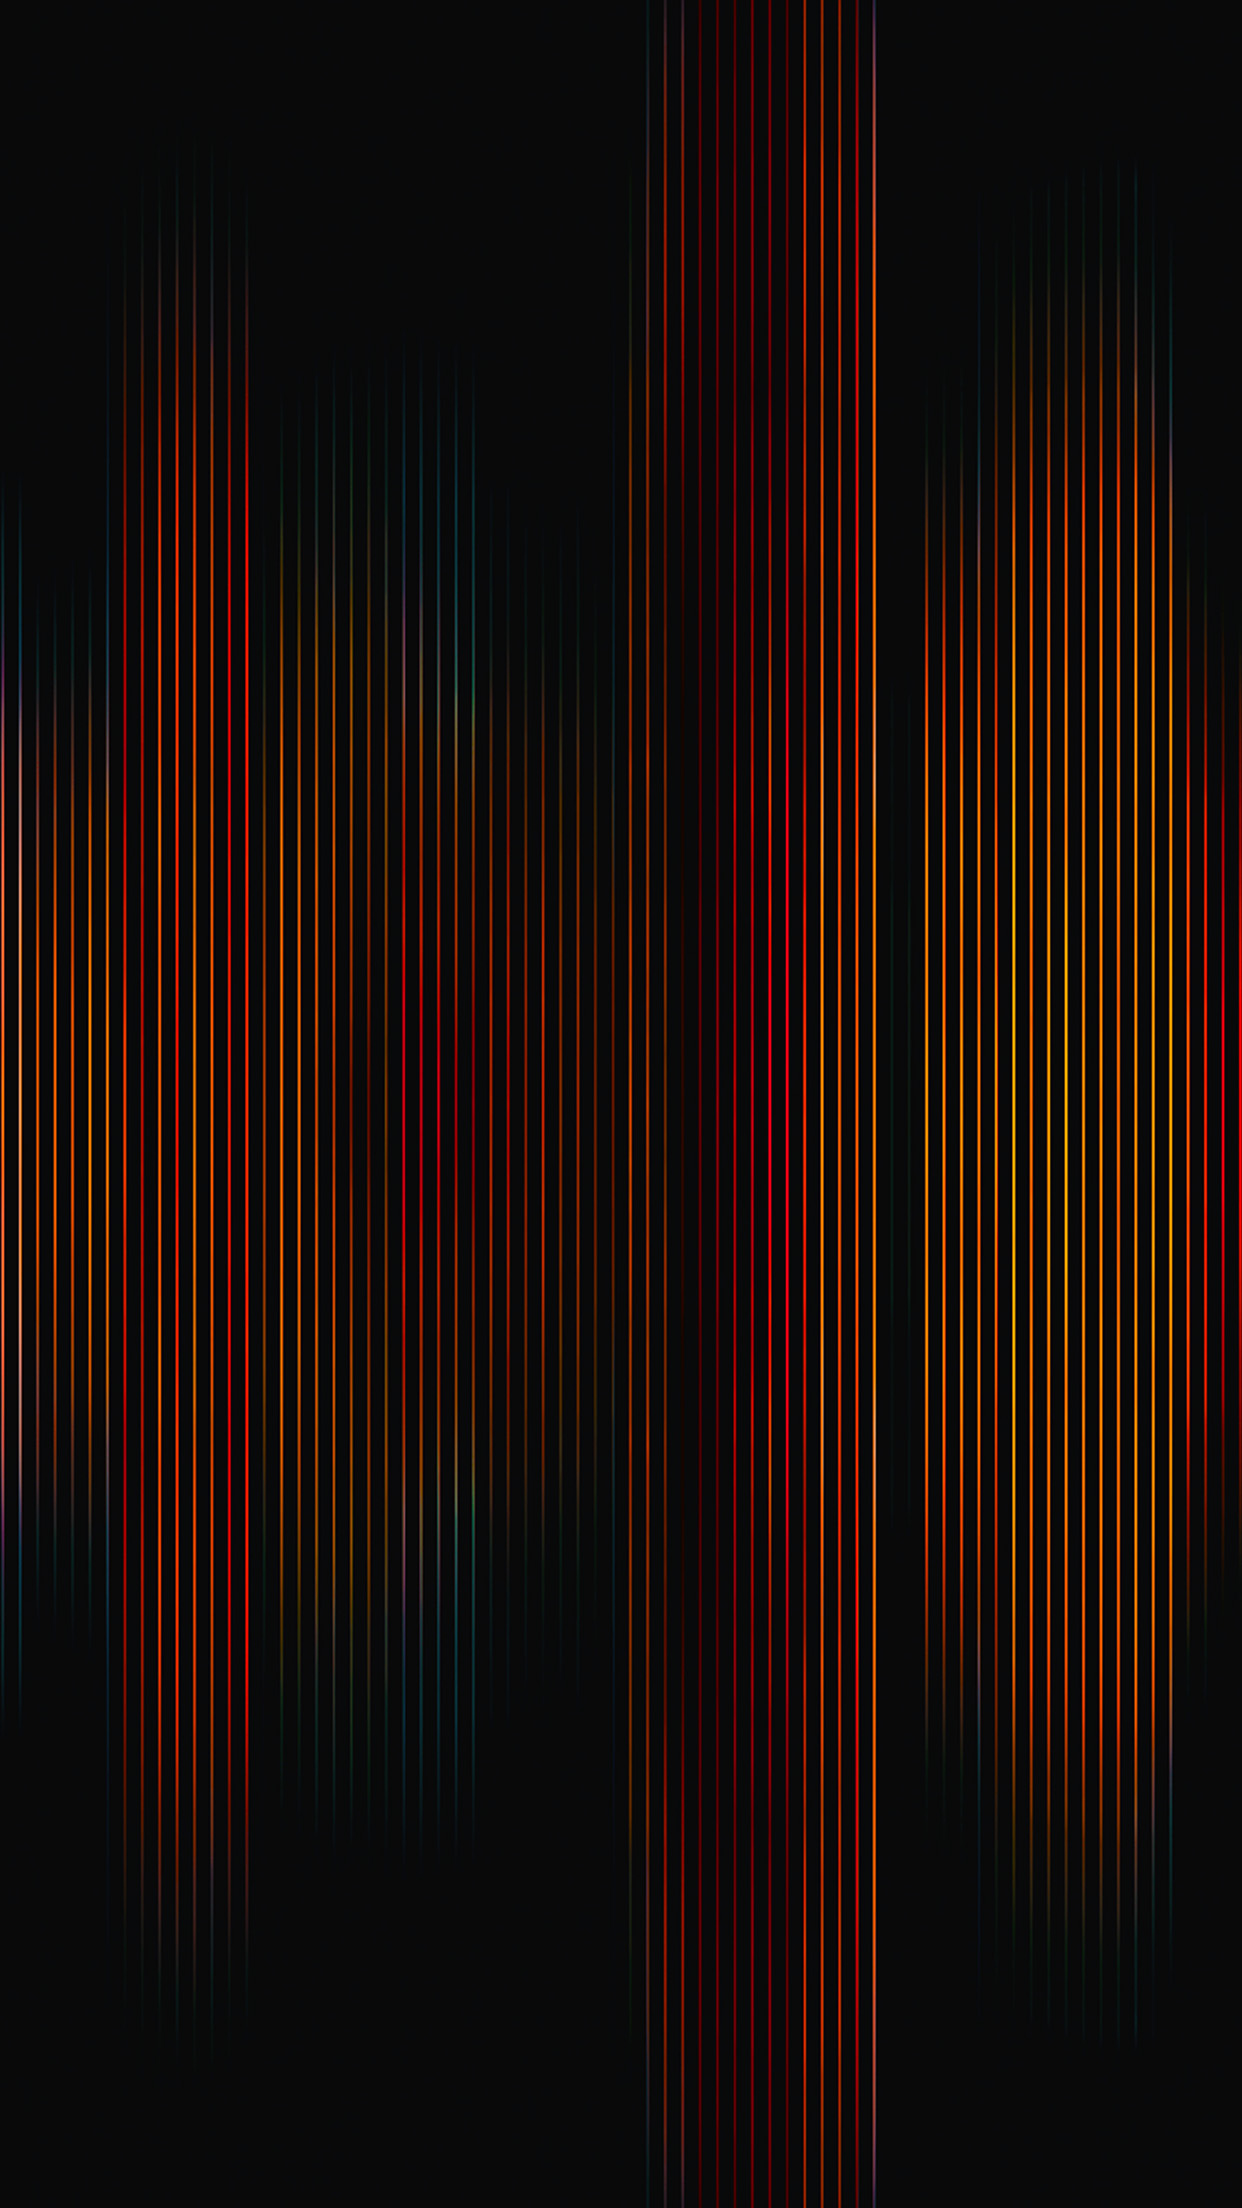 Papers Co Iphone Wallpaper Vy88 Line Art Dark City Pattern Background Red